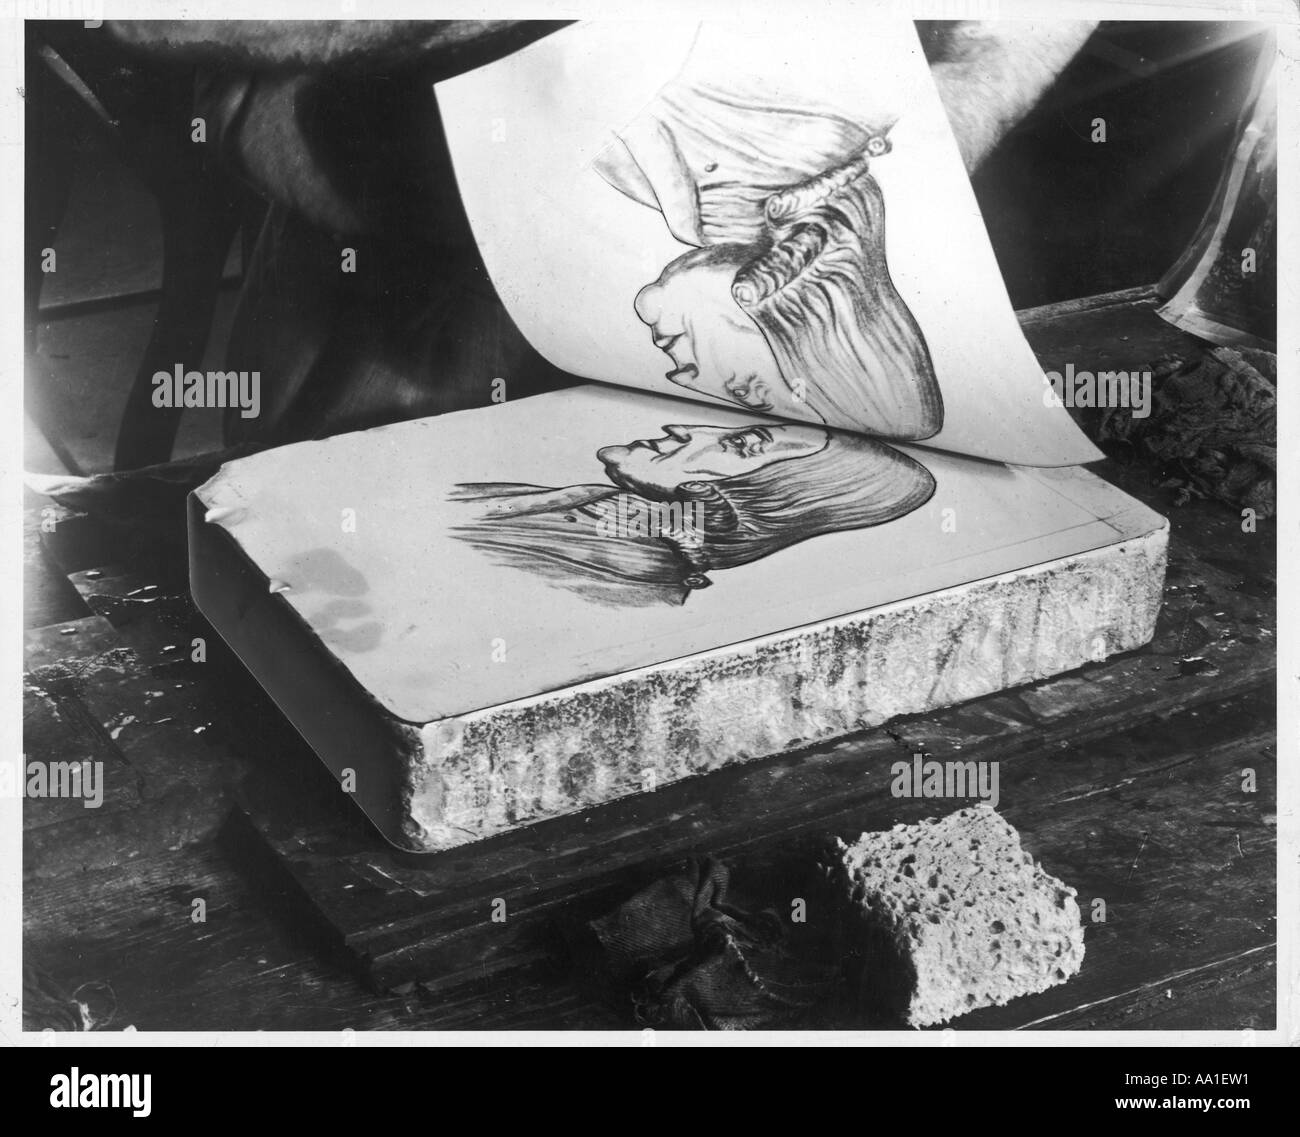 Making A Lithograph - Stock Image